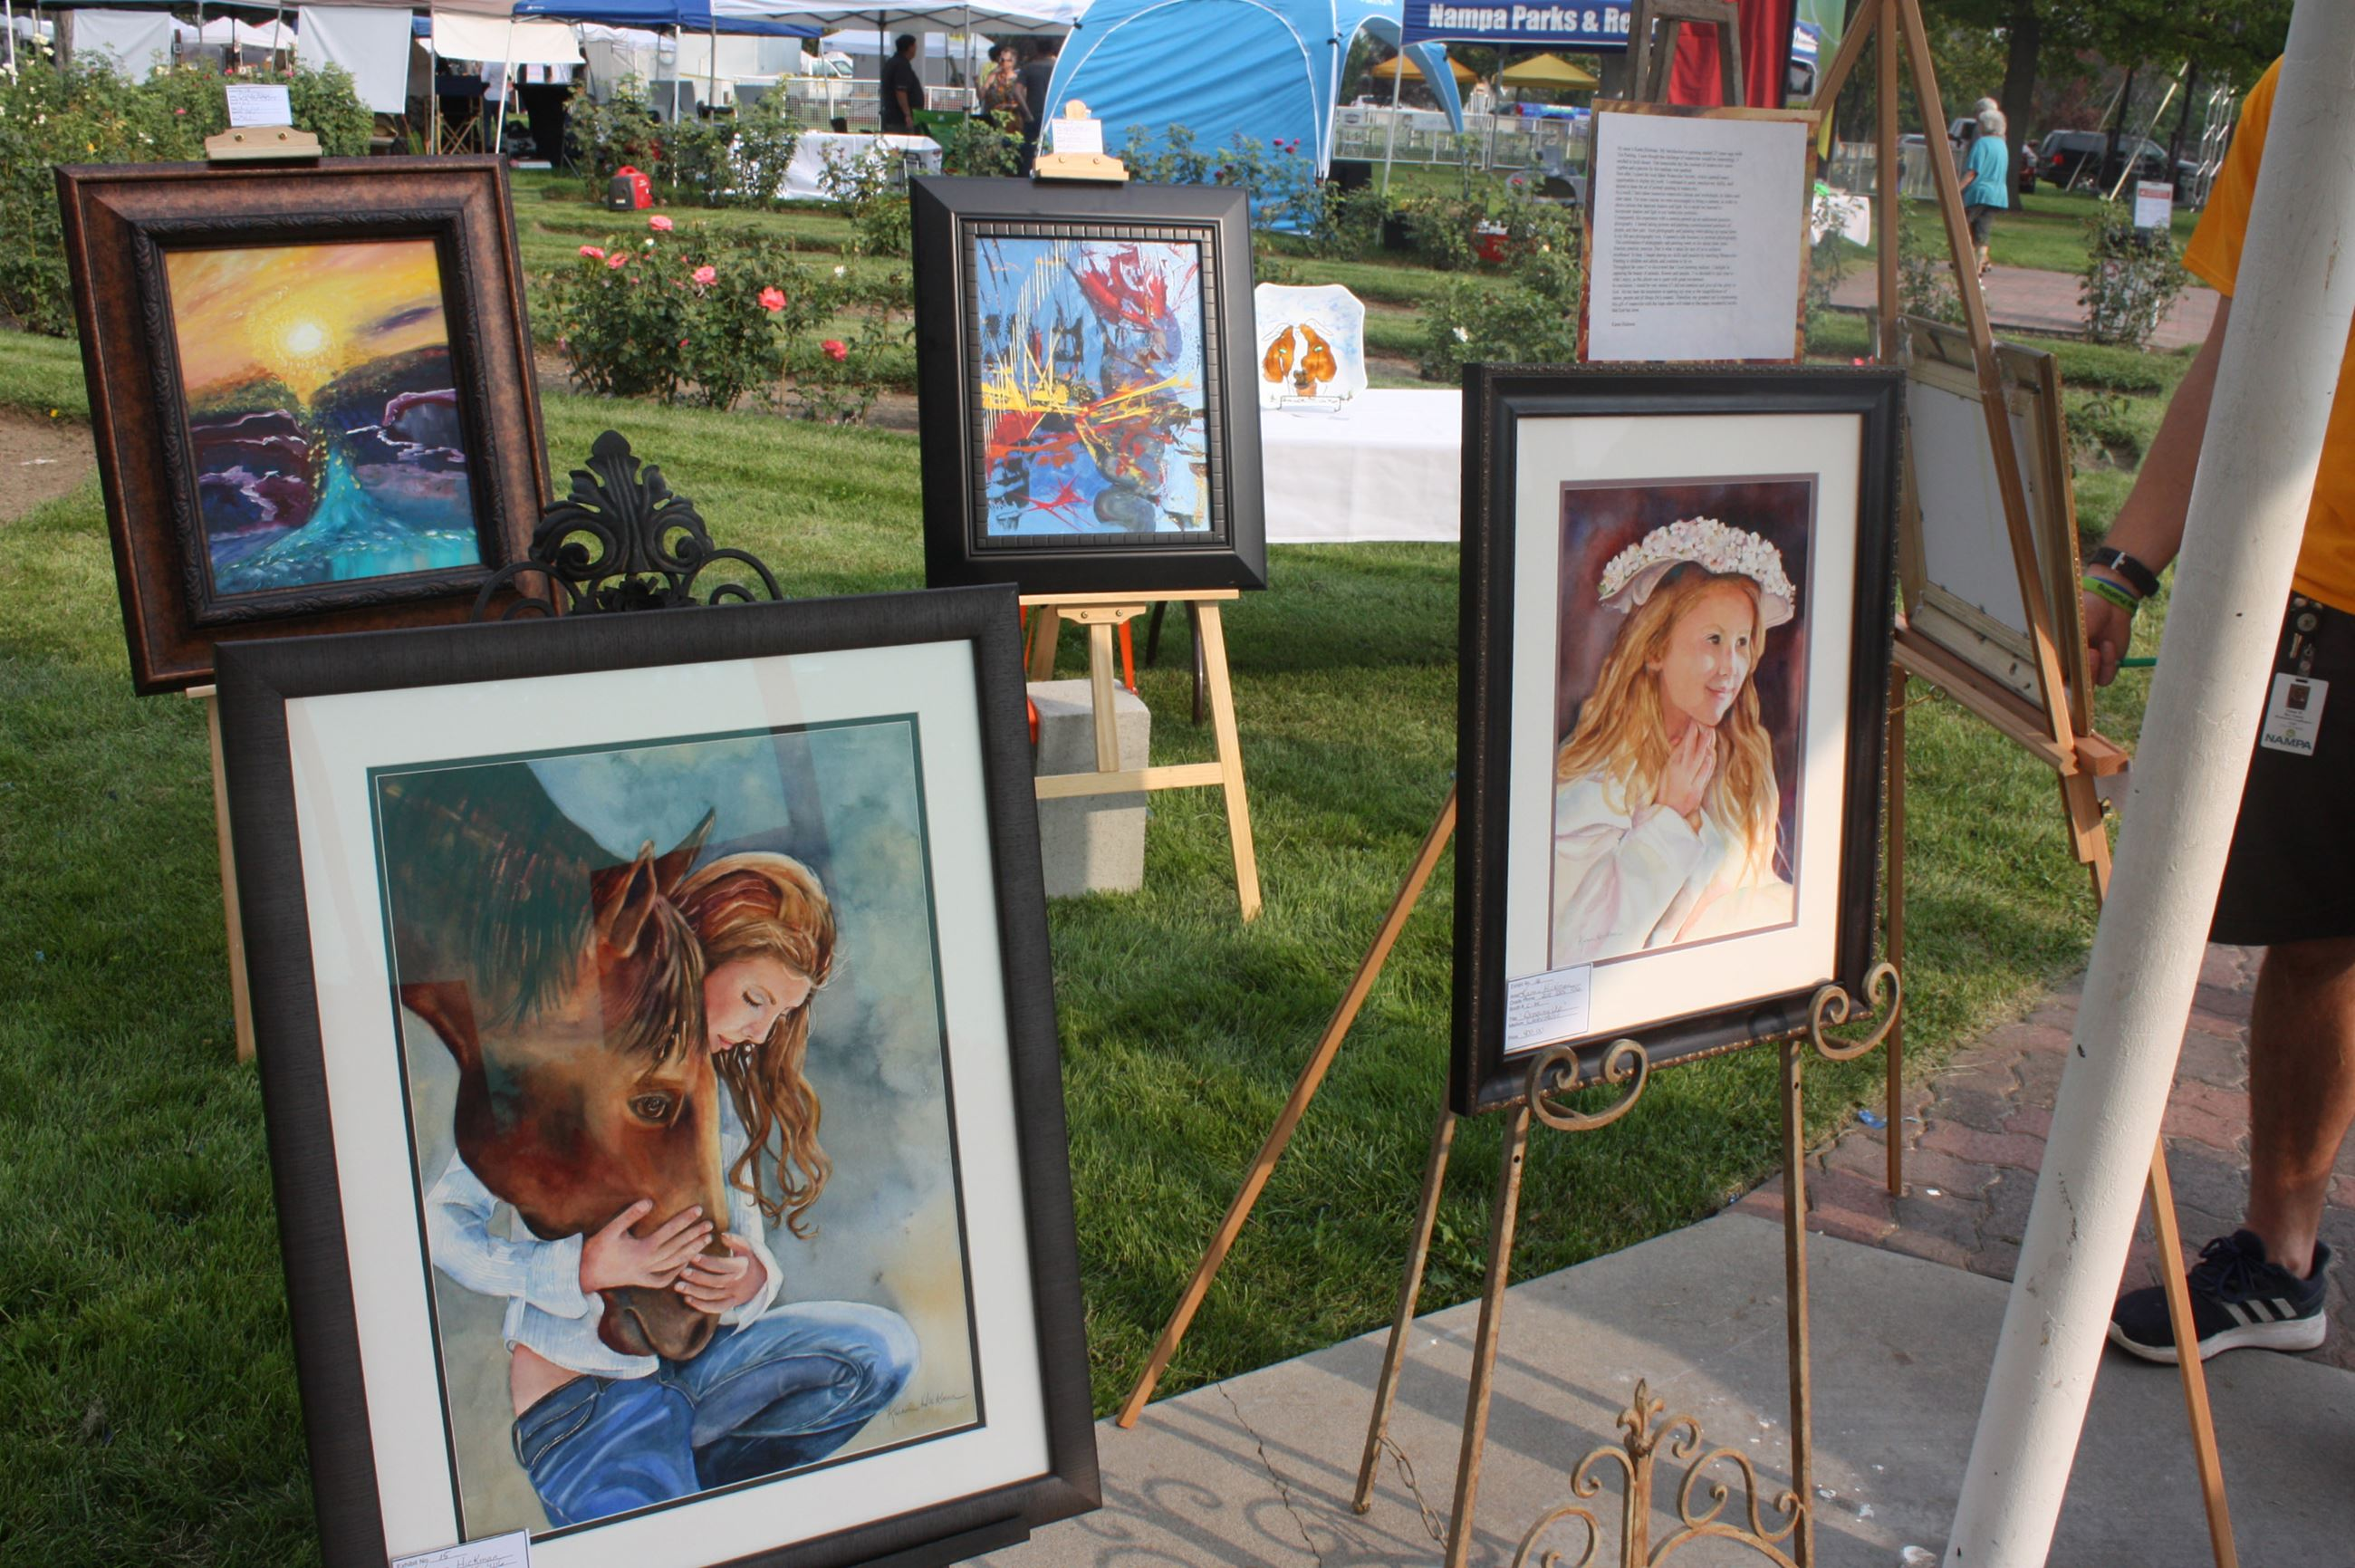 Paintings in the juried art show at the Nampa Festival of the Arts